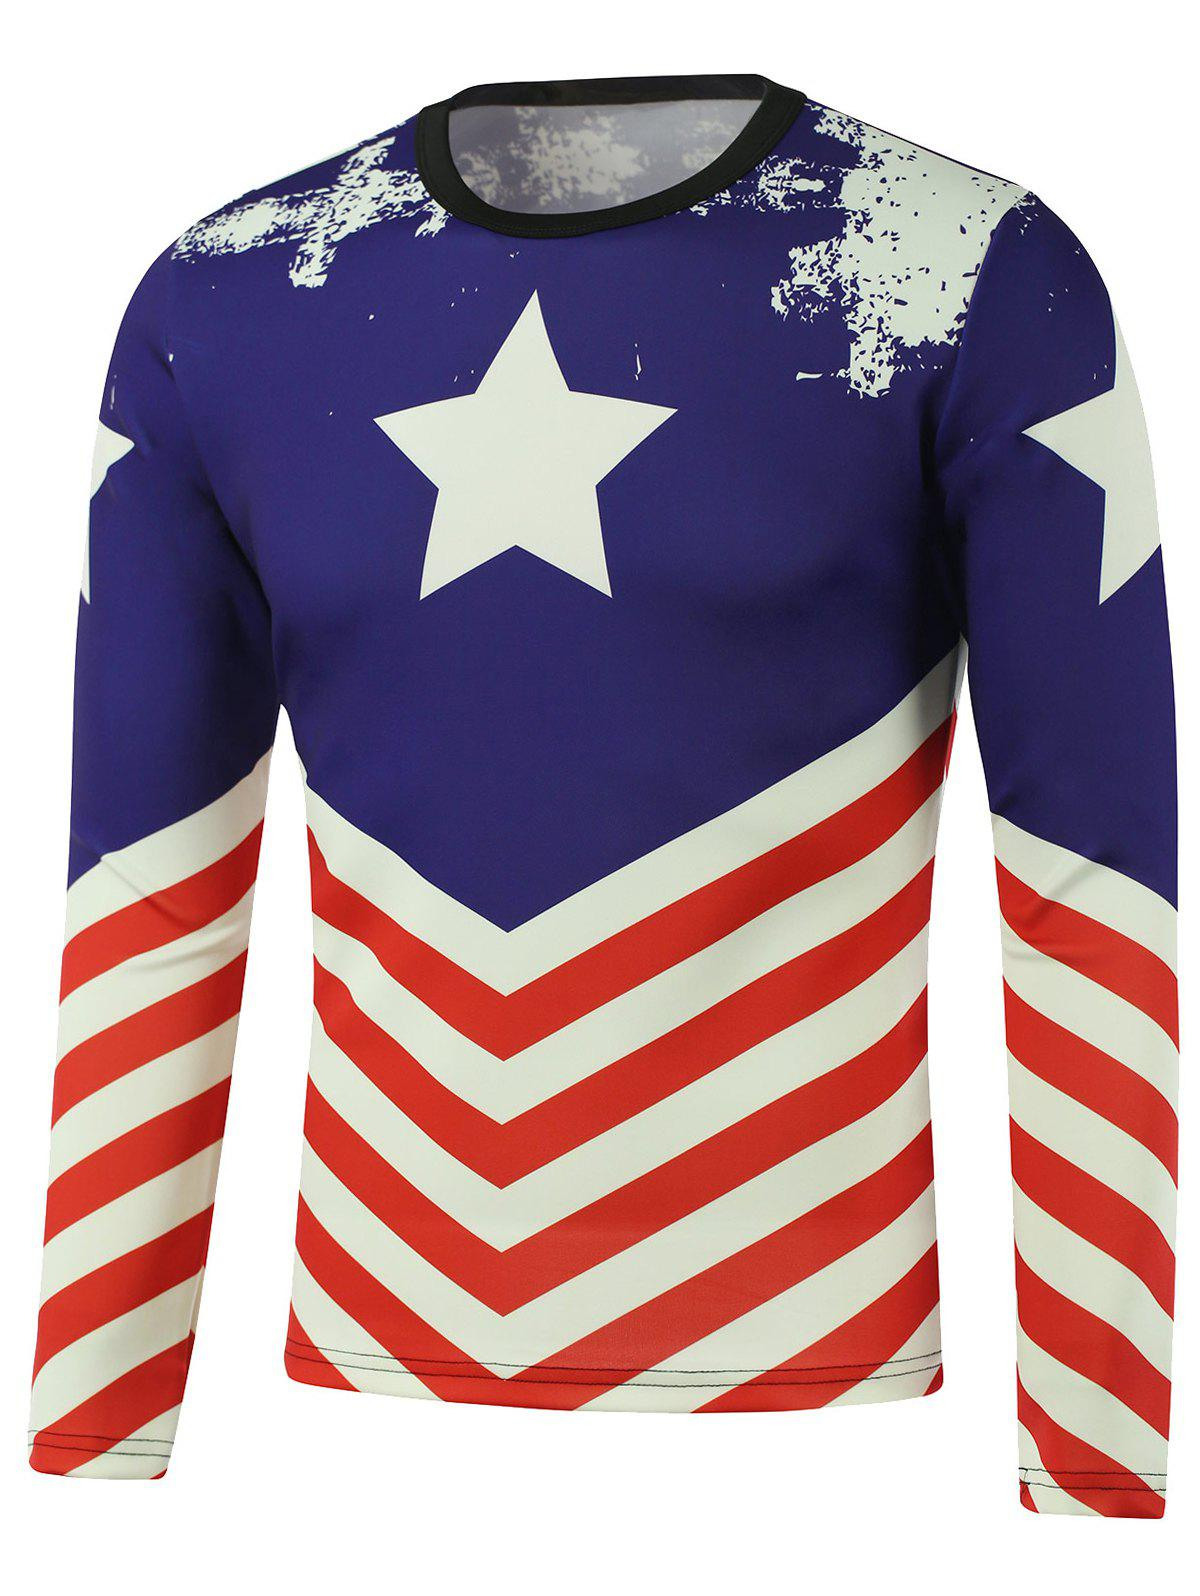 Pentagram American Flag Printed Long Sleeve Sweatshirt тетрадь в линию magic lines французский завтрак а4 80 листов